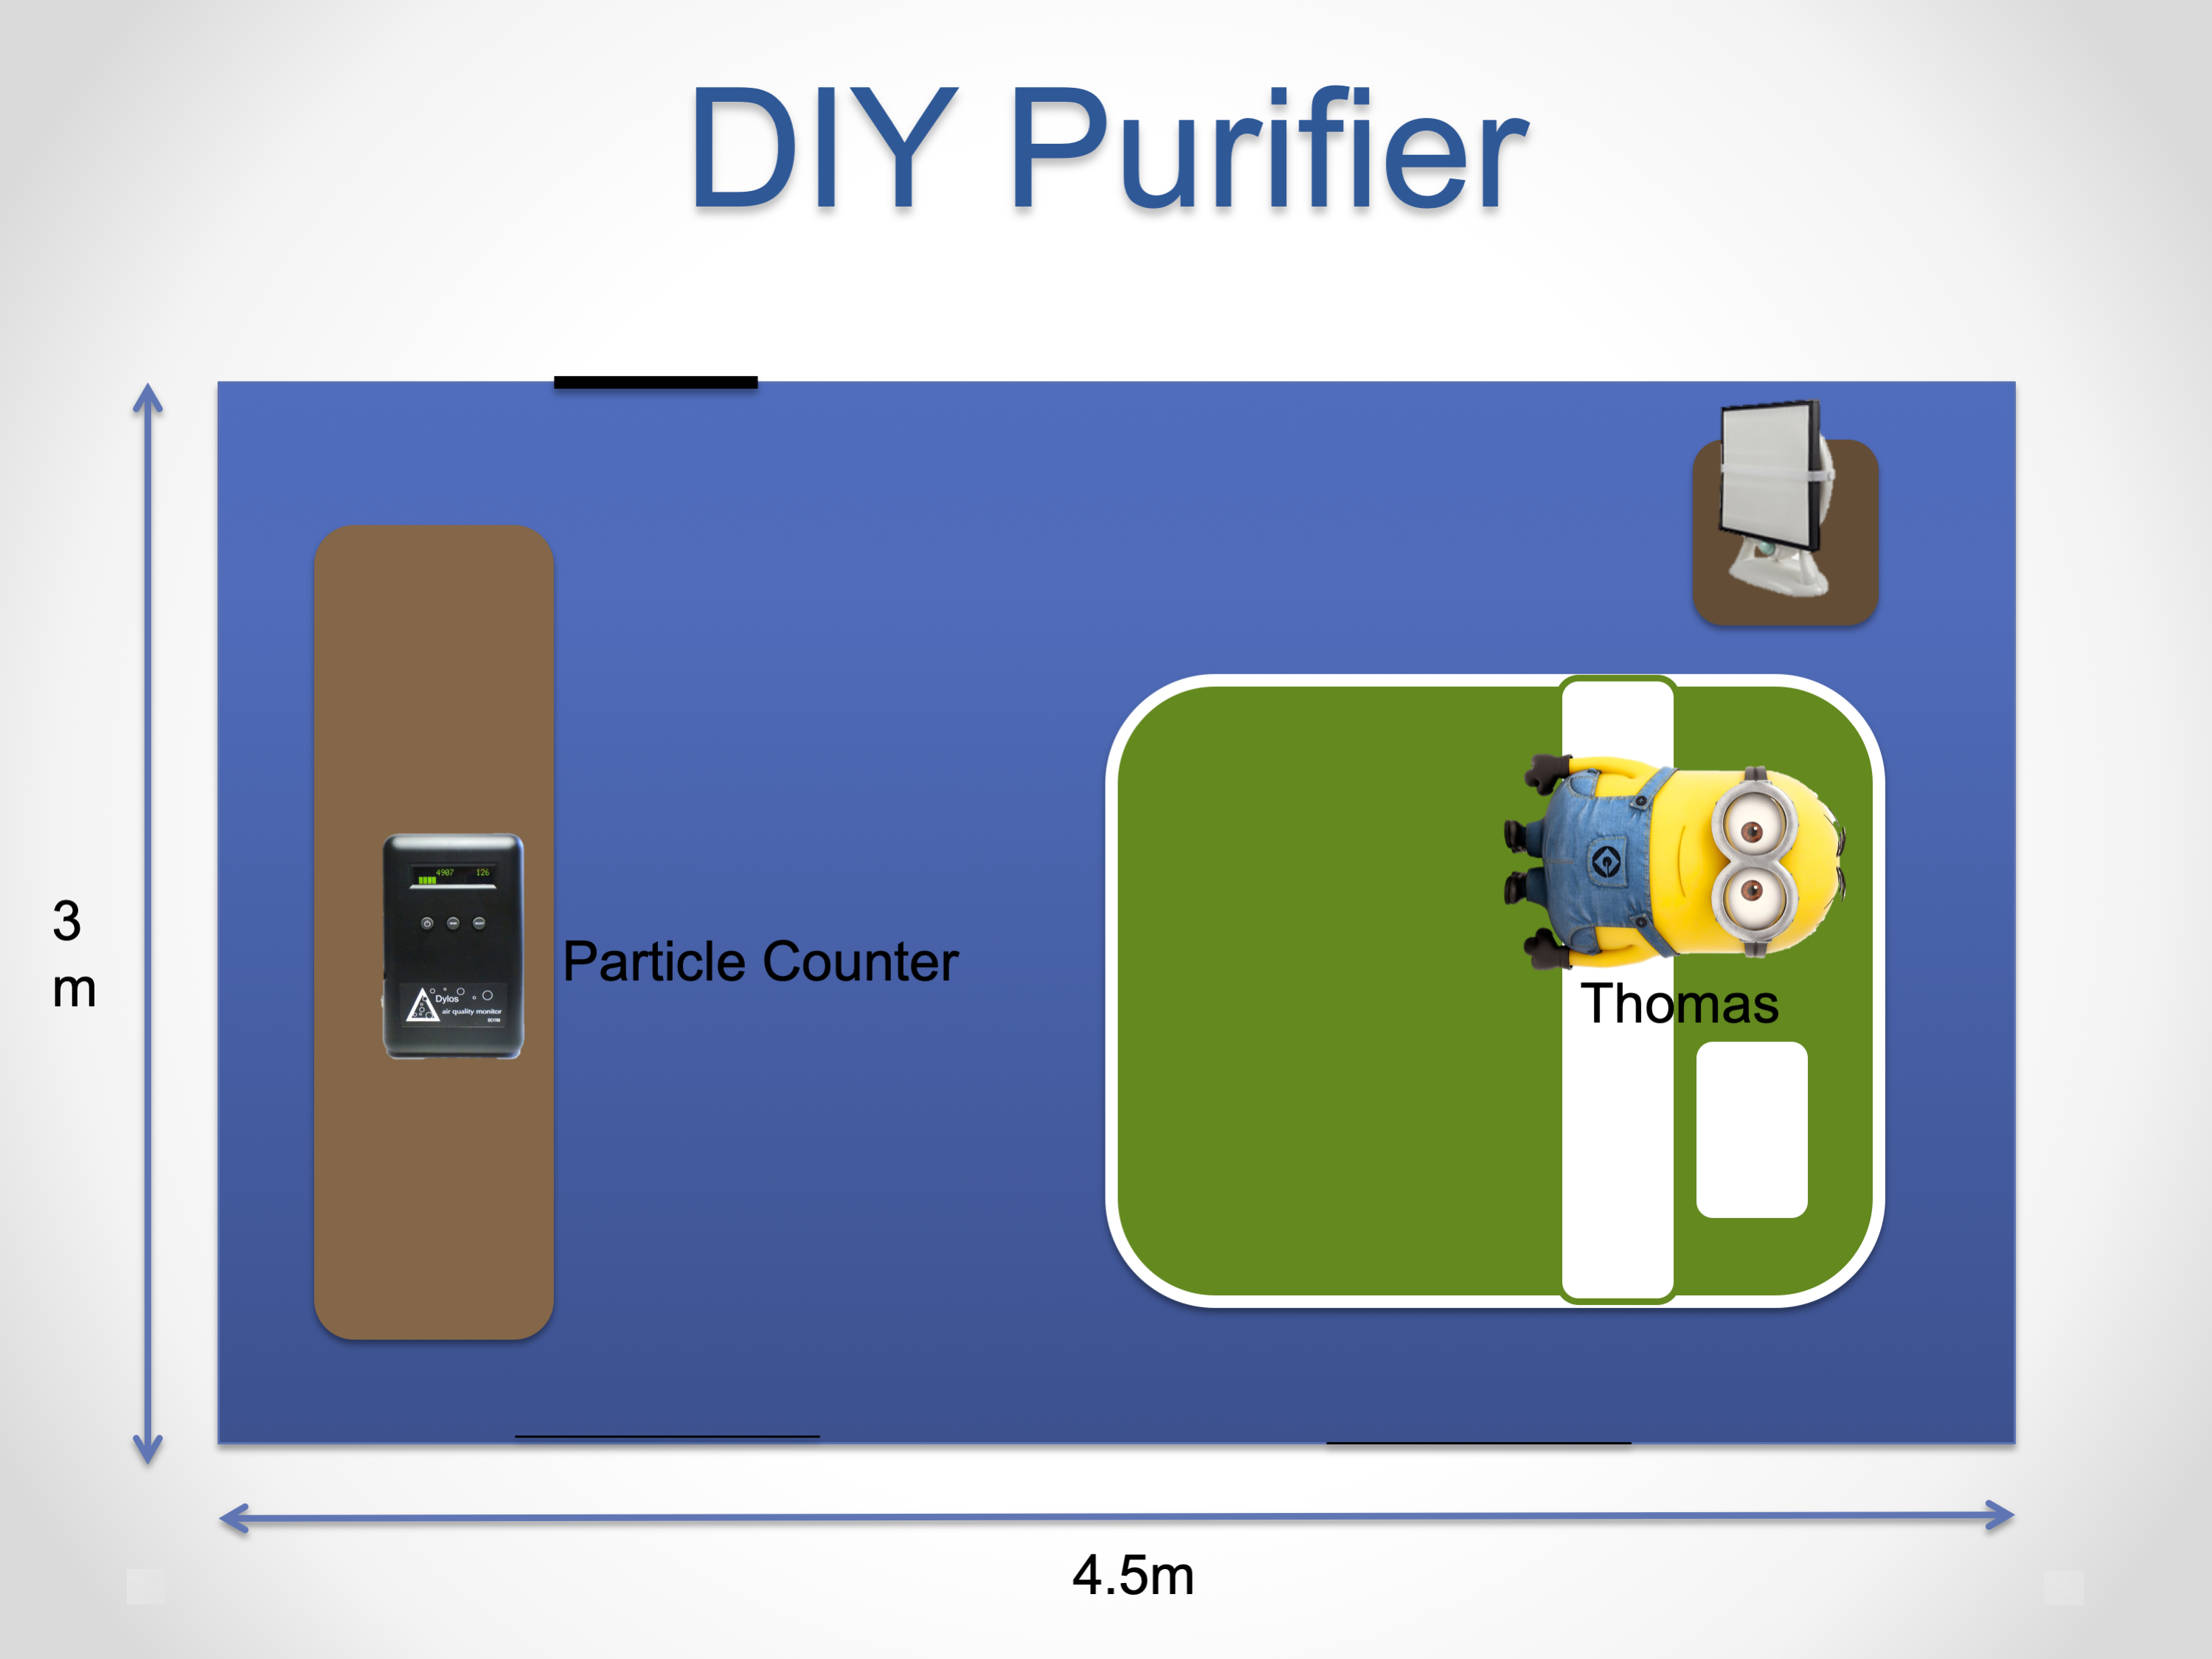 DIY purifier Smart Air